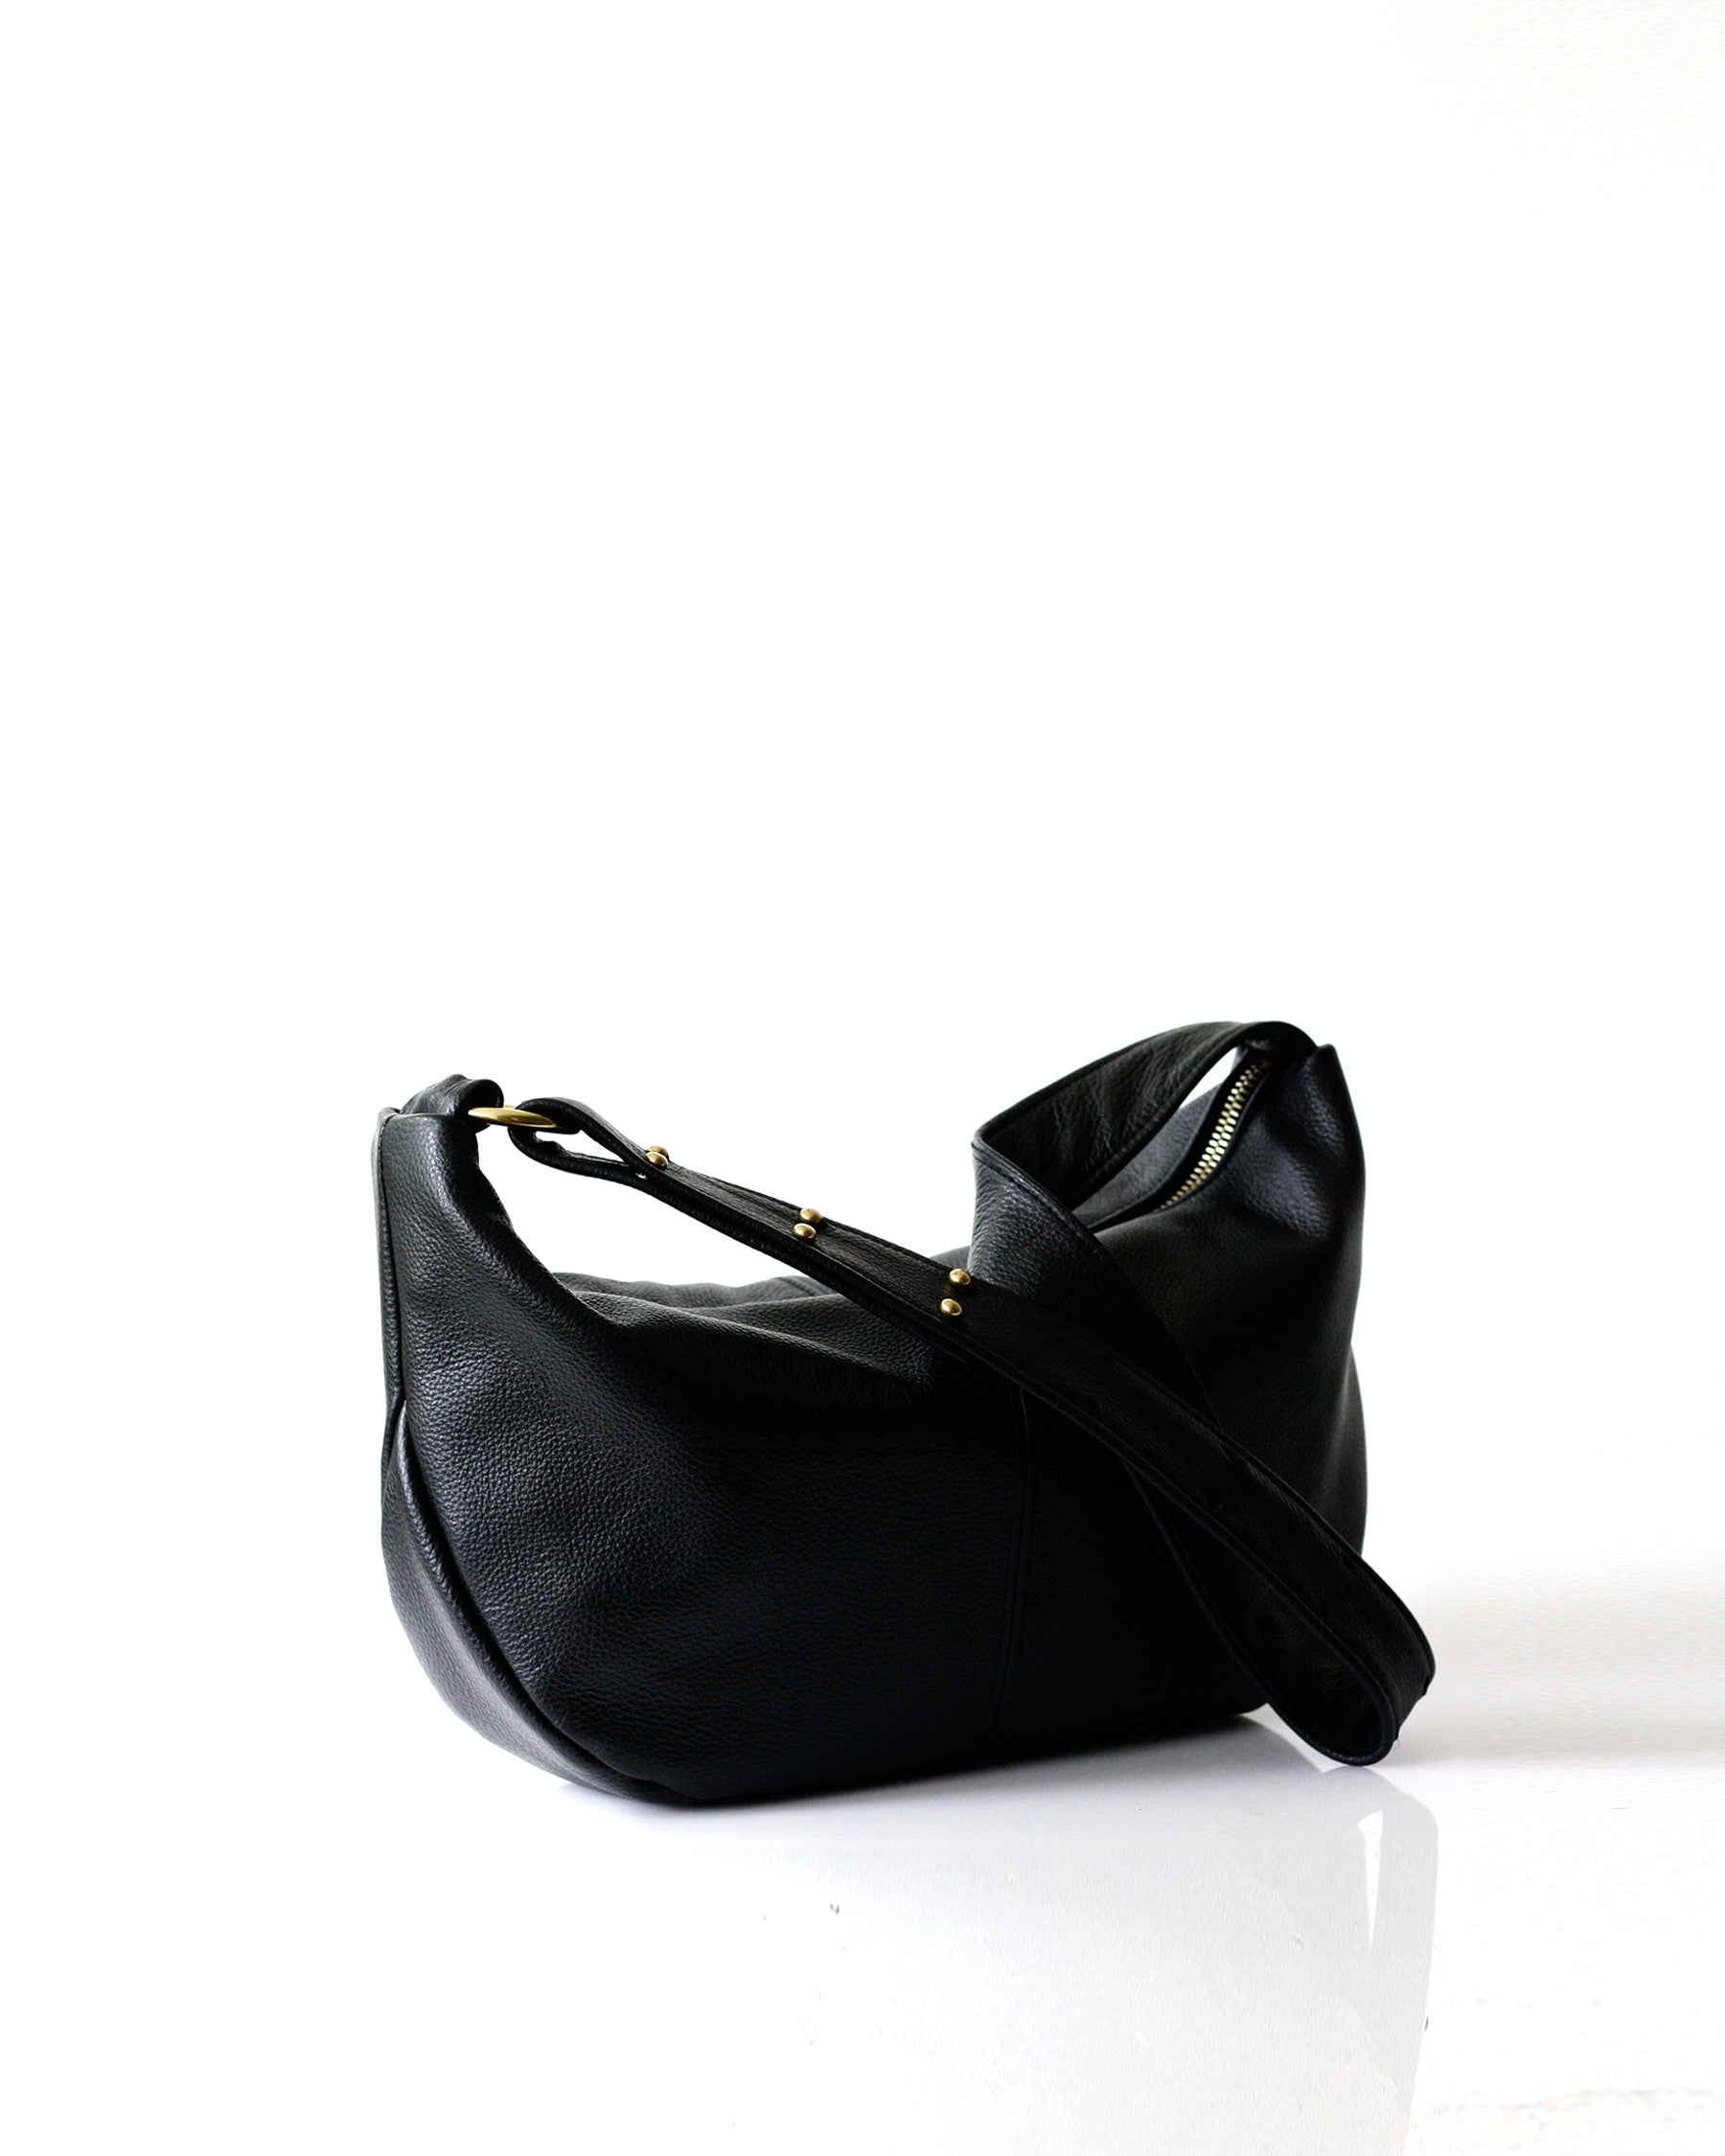 Roberta Sling - OPELLE bag opelle handbag opellecreative